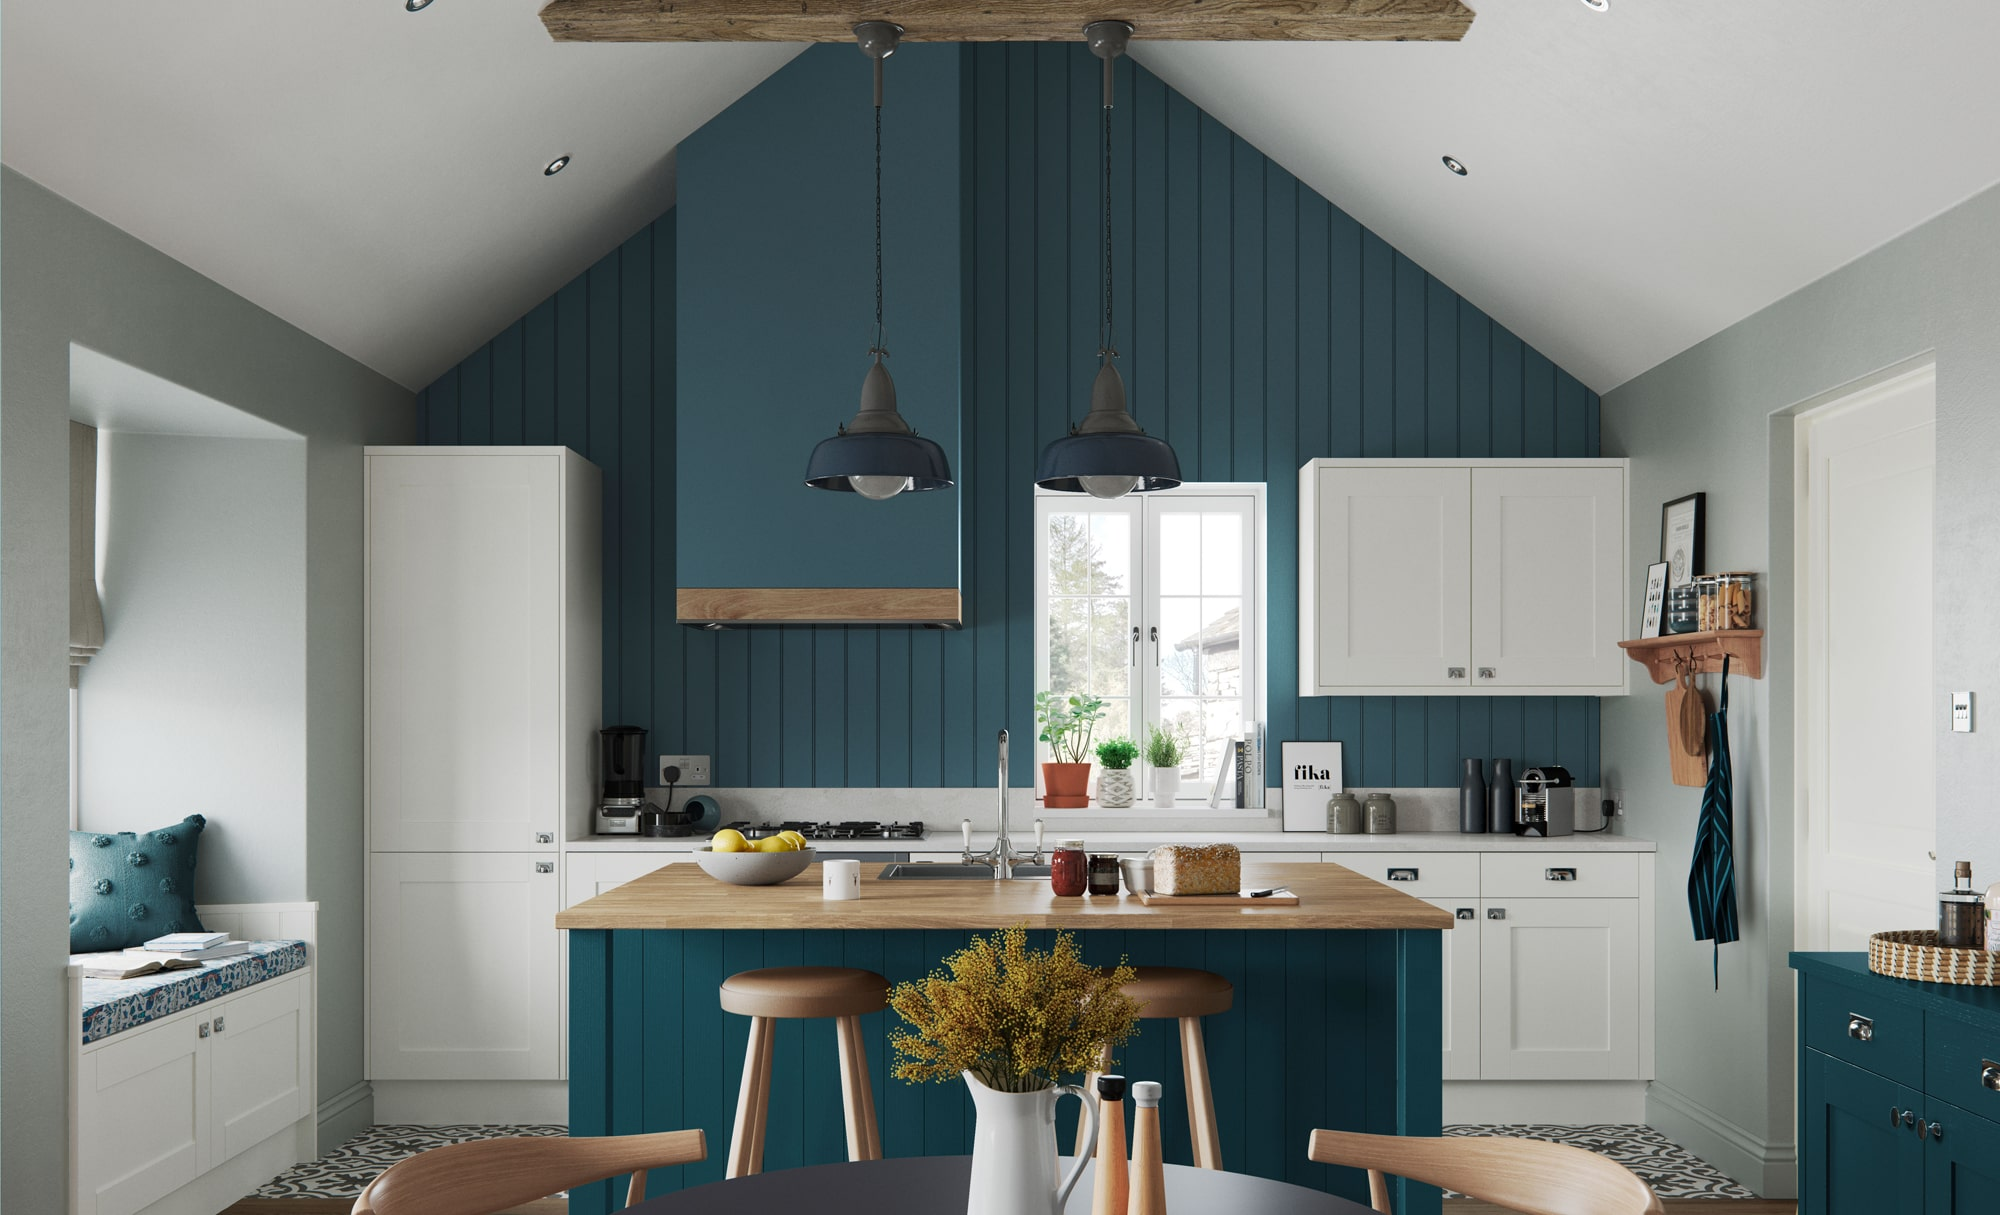 Classic Modern Madison Shaker Style Kitchen in Painted Porcelain & Marine